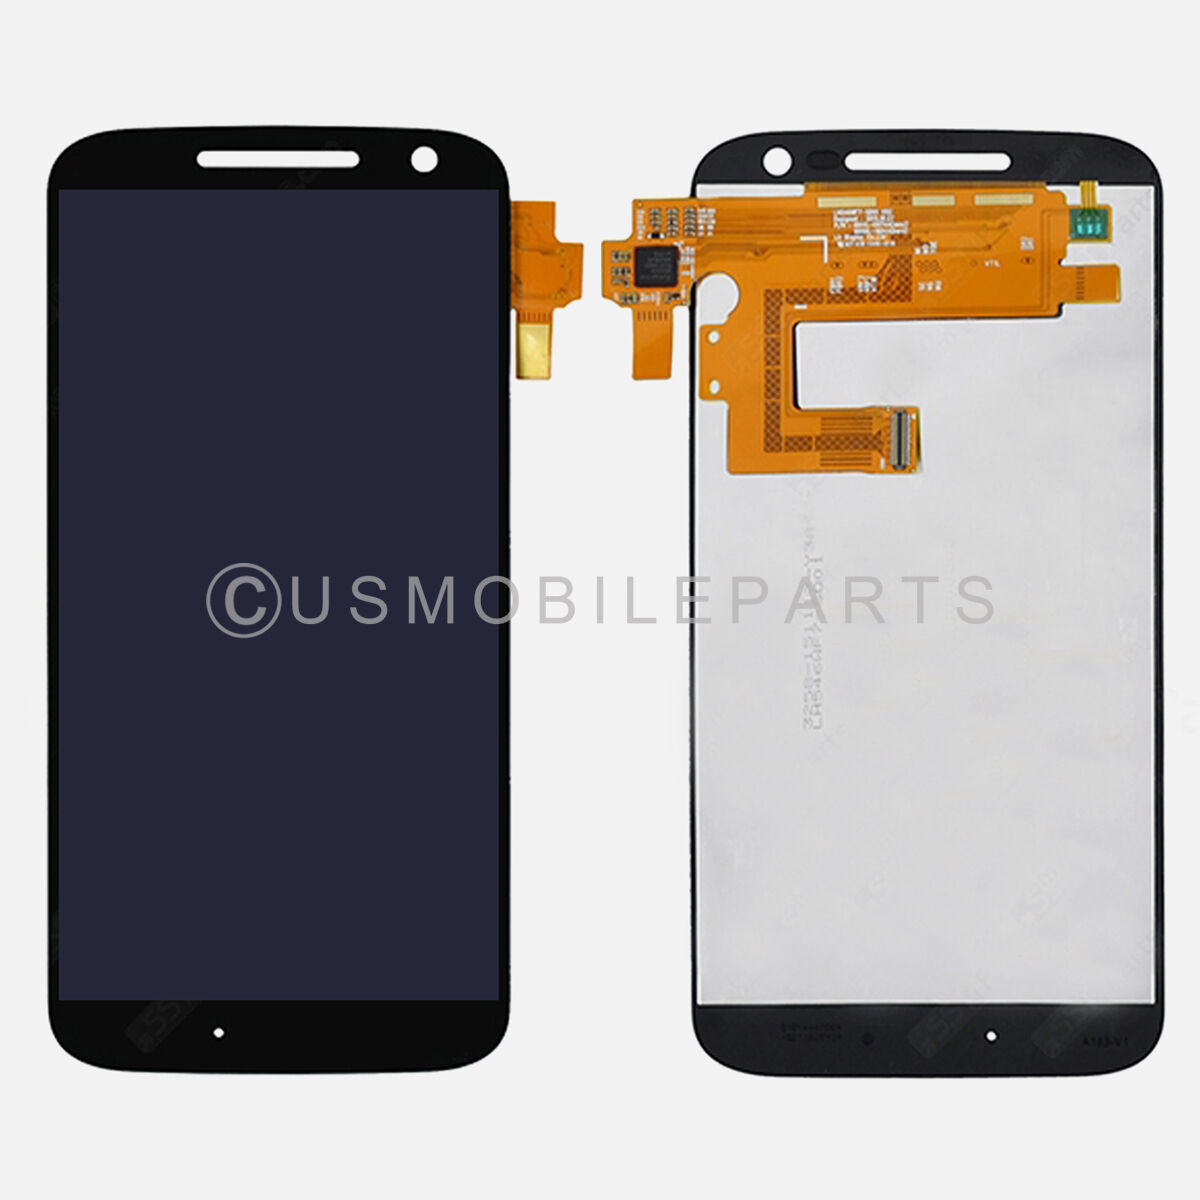 Us Motorola Moto G4 Lte Xt1625 Touch Screen Digitizer Gla...